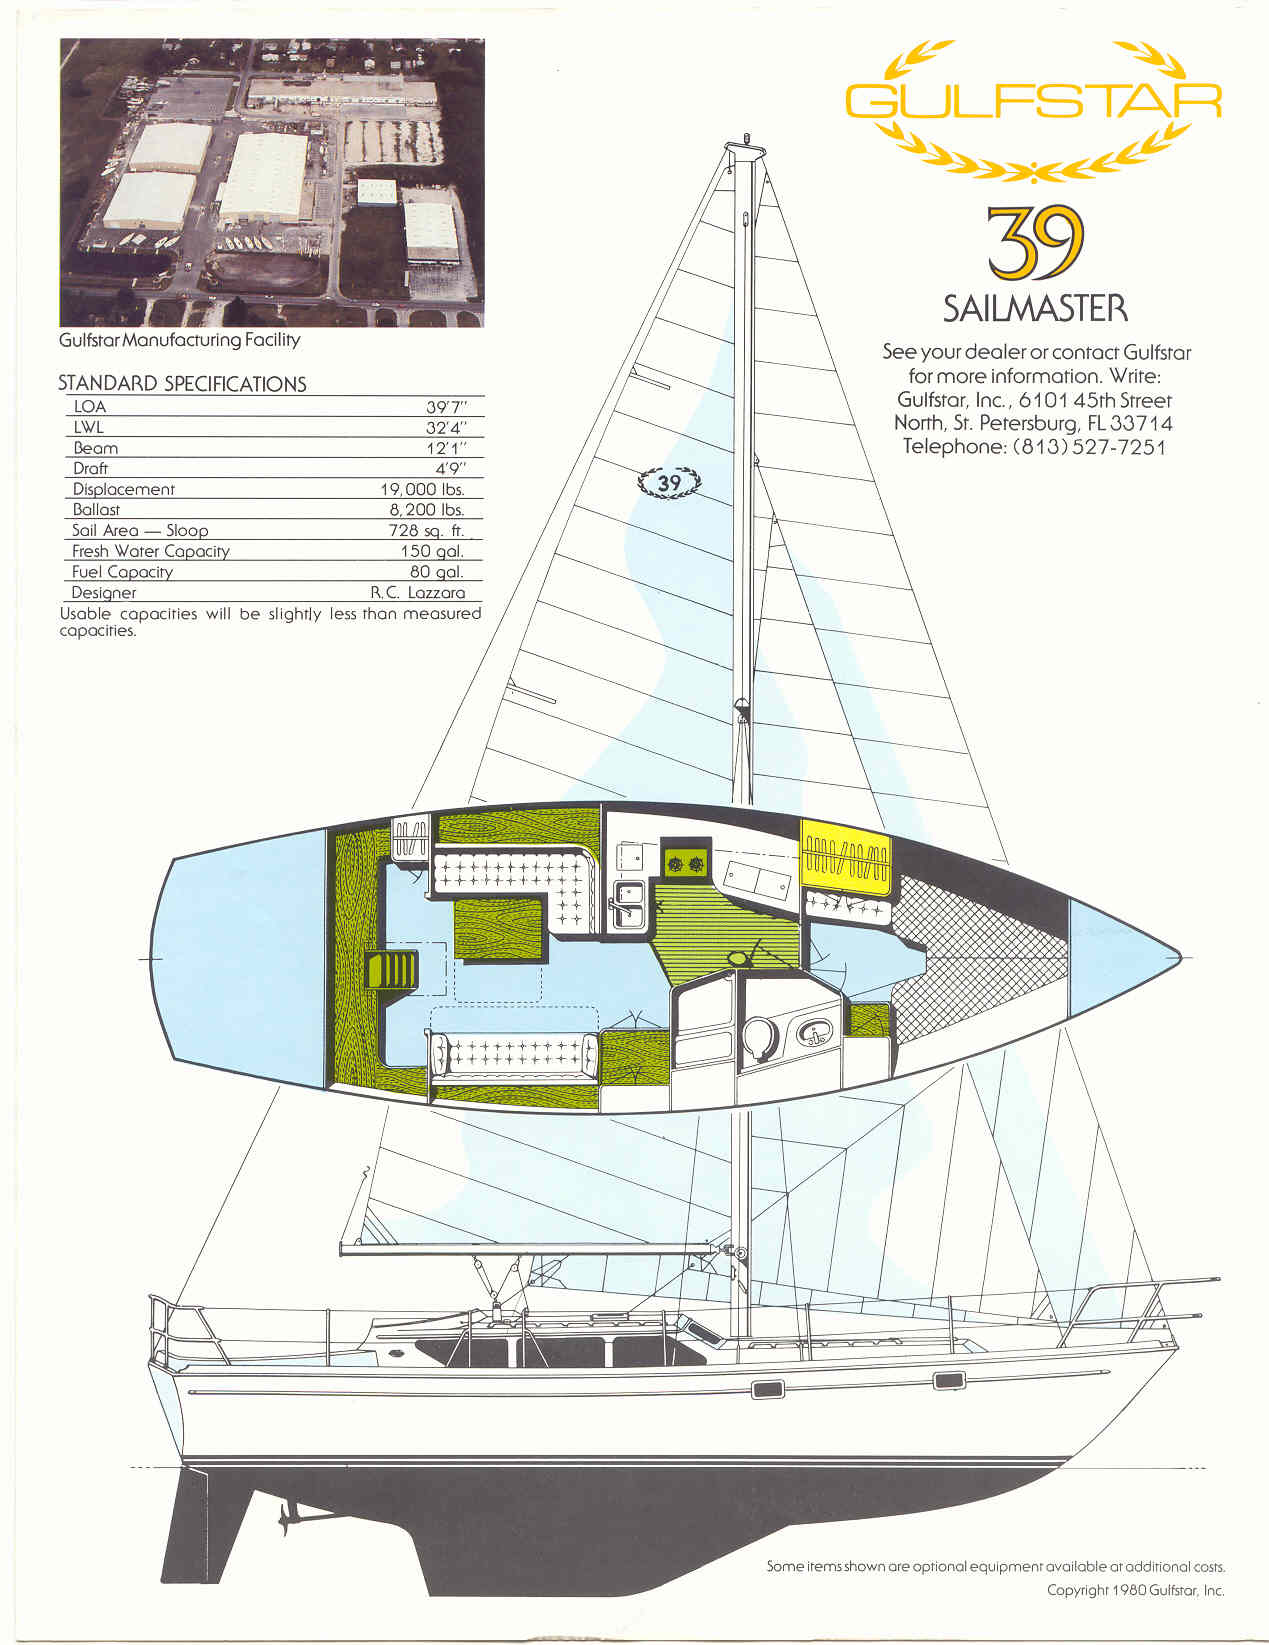 Gulfstar39Brochure pg4 gulfstar 44 wiring schematic gulfstar 50 specs \u2022 wiring diagrams  at mr168.co